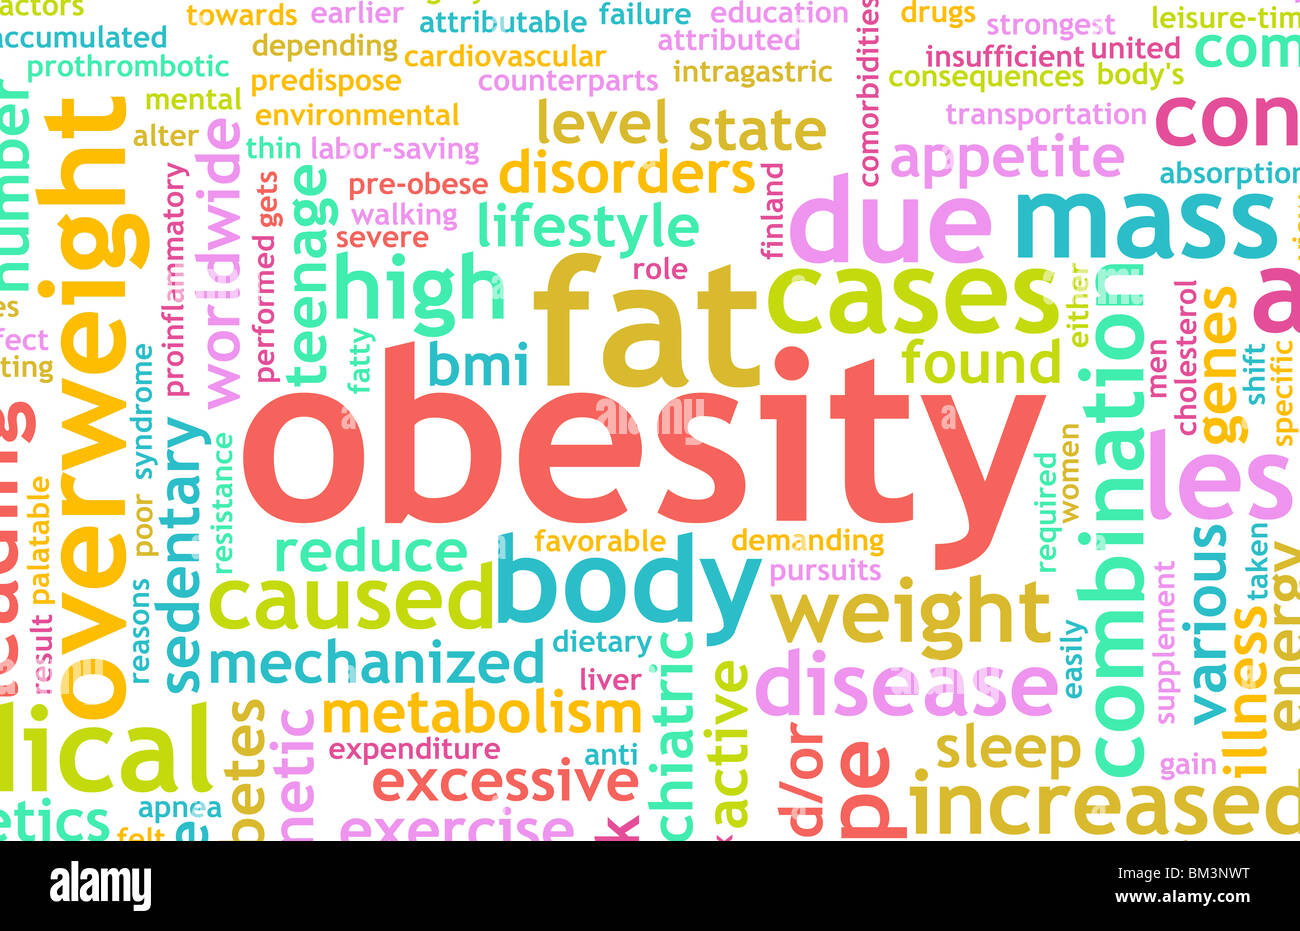 Obesity Concept Of Being Overweight And Unhealthy Stock Photo Alamy